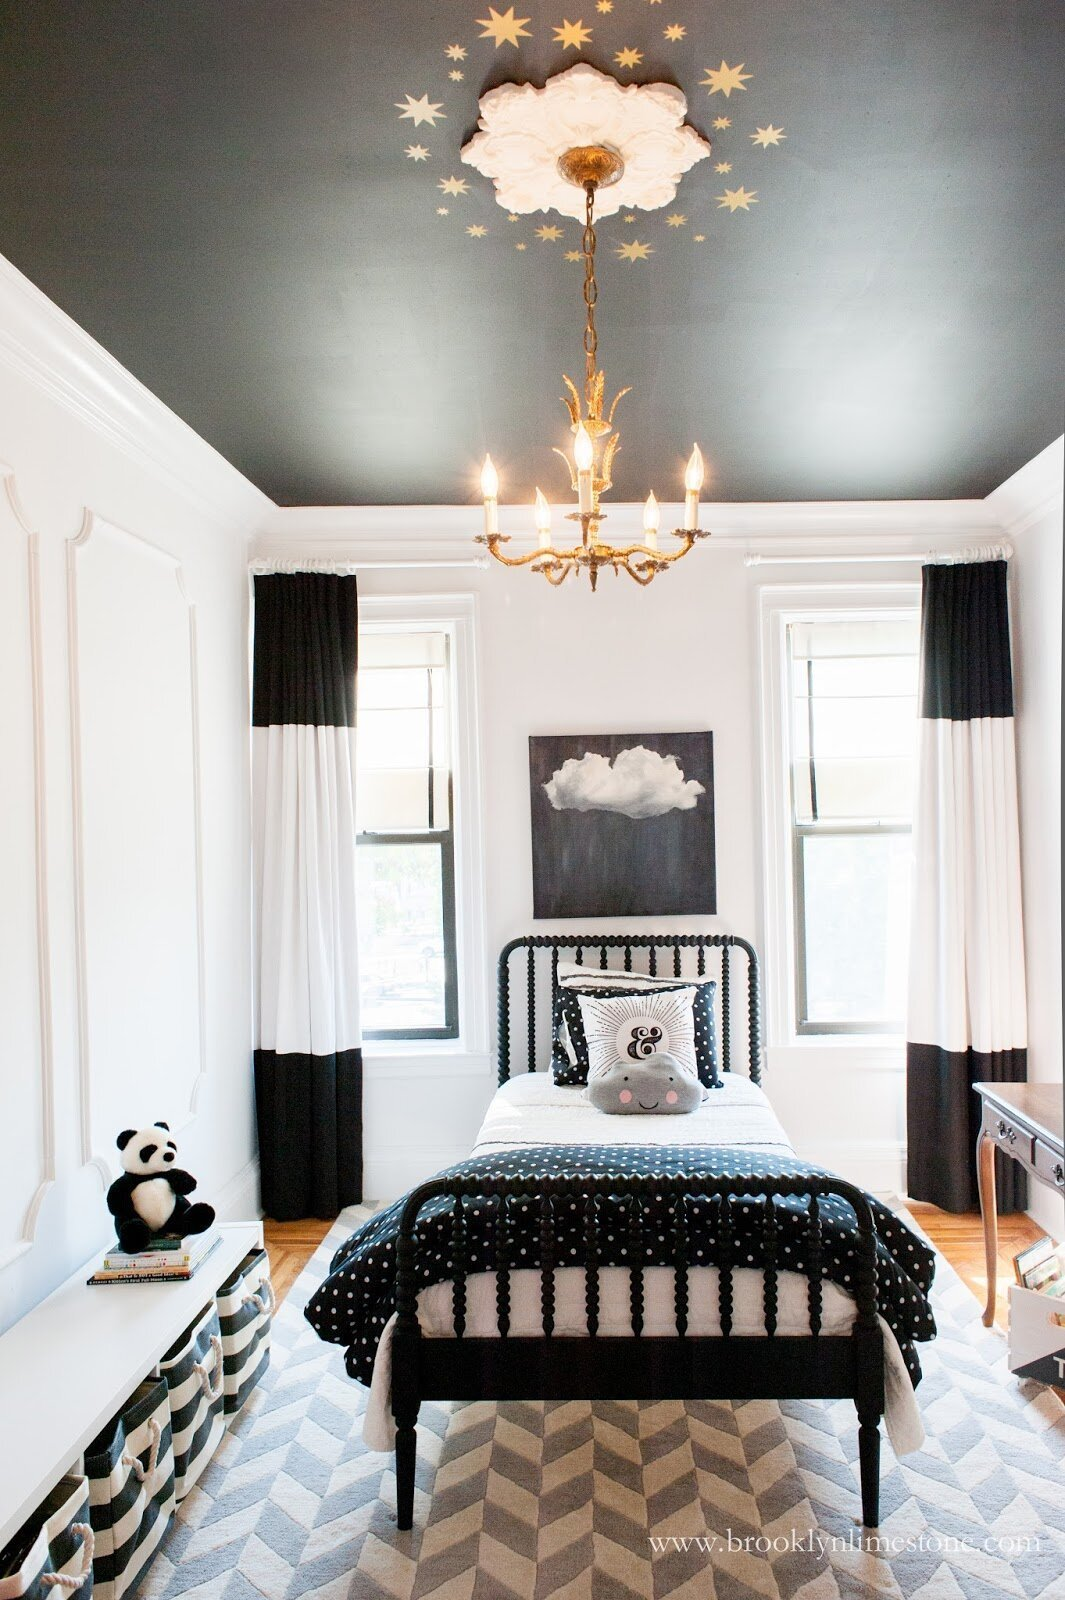 Adding a playful touch to a black ceiling in a children's room. Credit:  www.brooklynlimestone.com